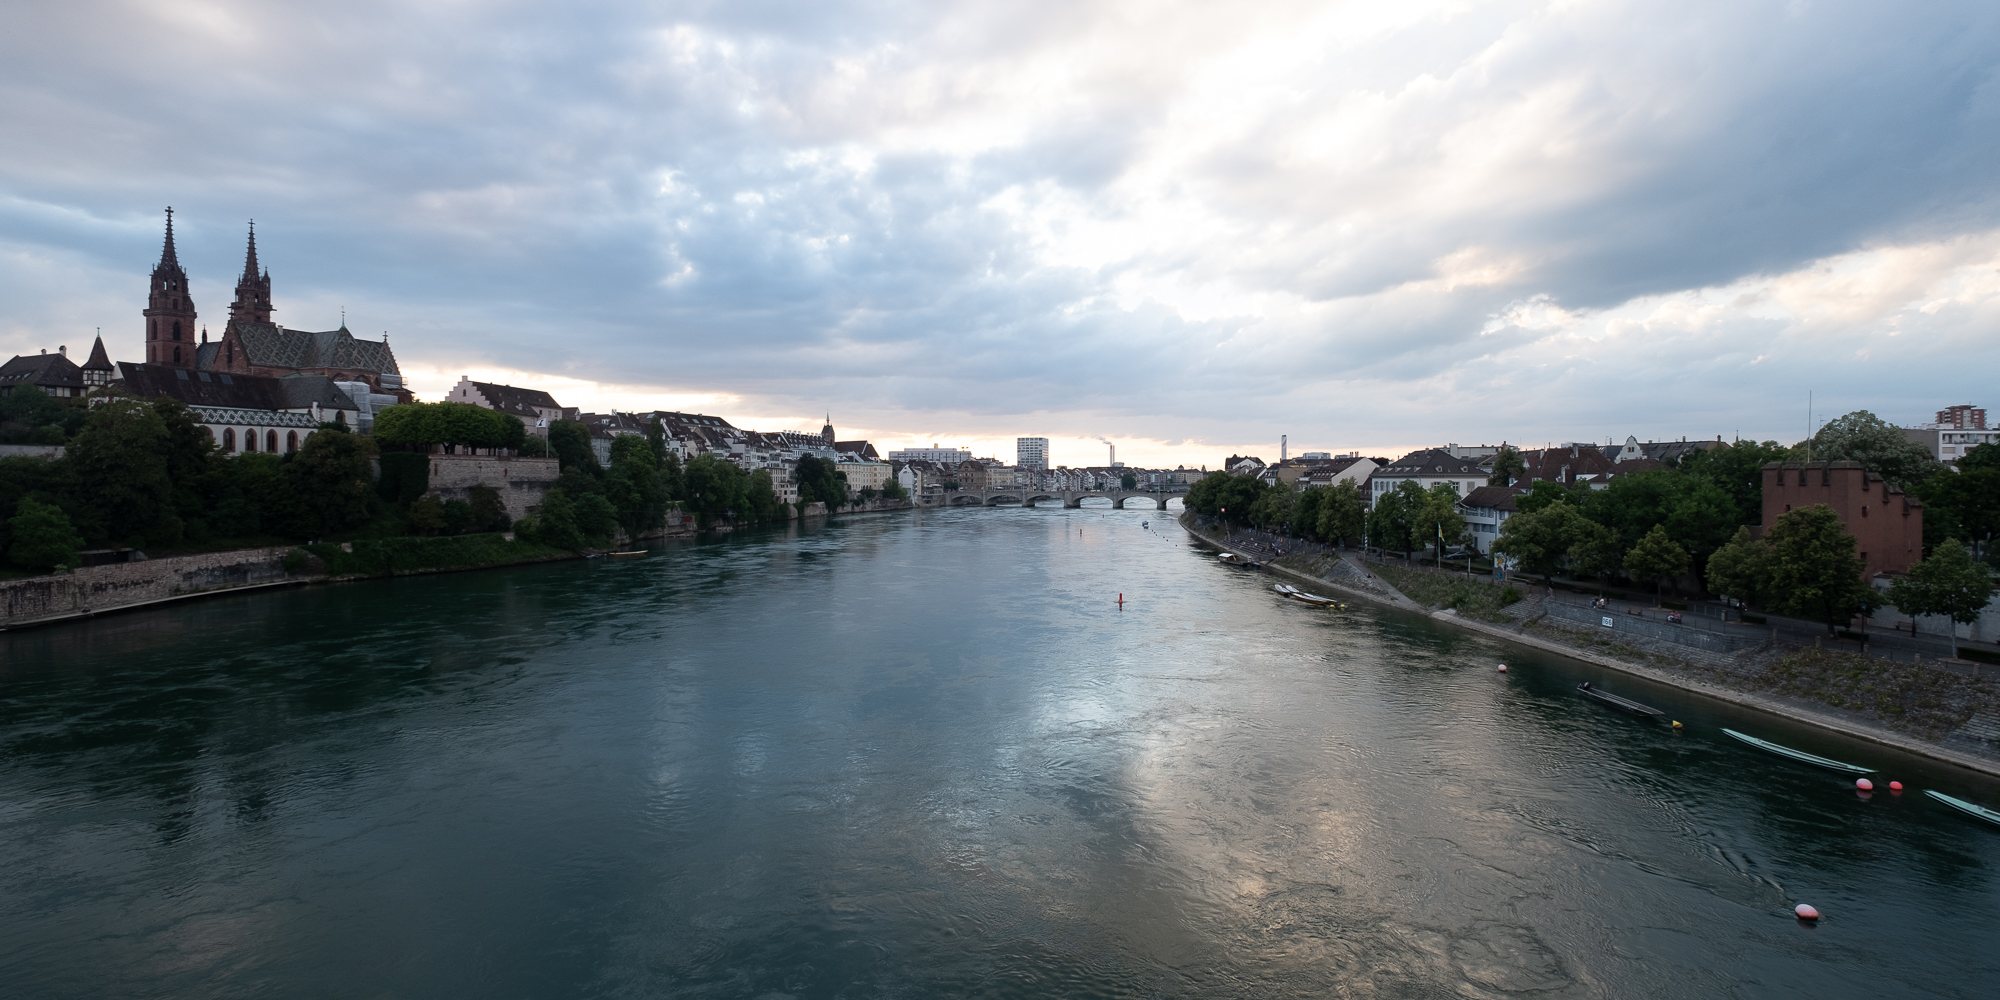 A panorama of the Rhine taken from the middle of a bridge.